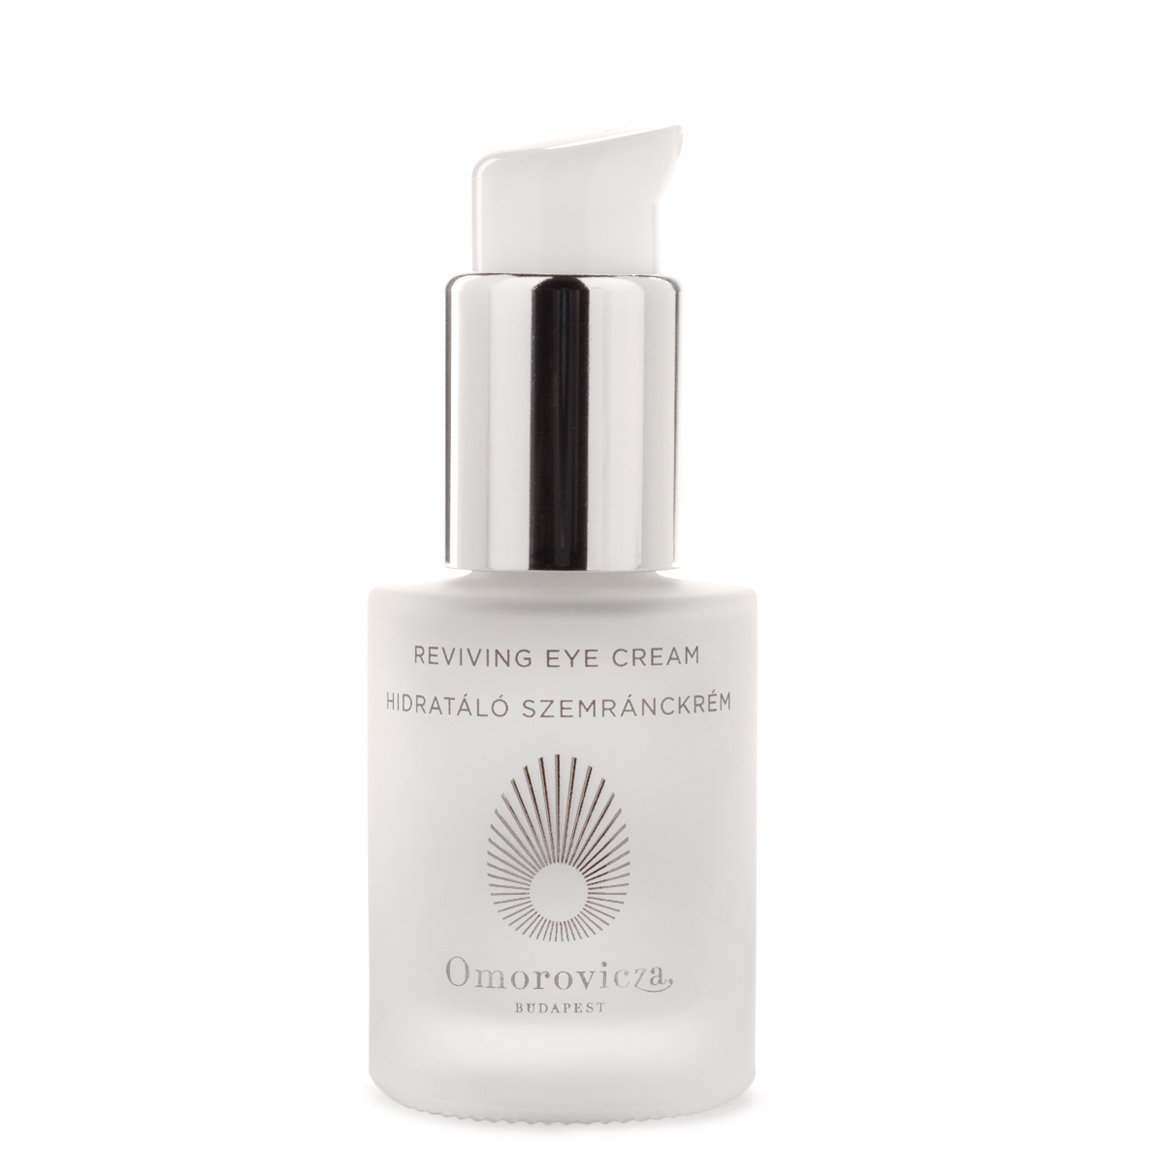 Omorovicza Reviving Eye Cream product swatch.